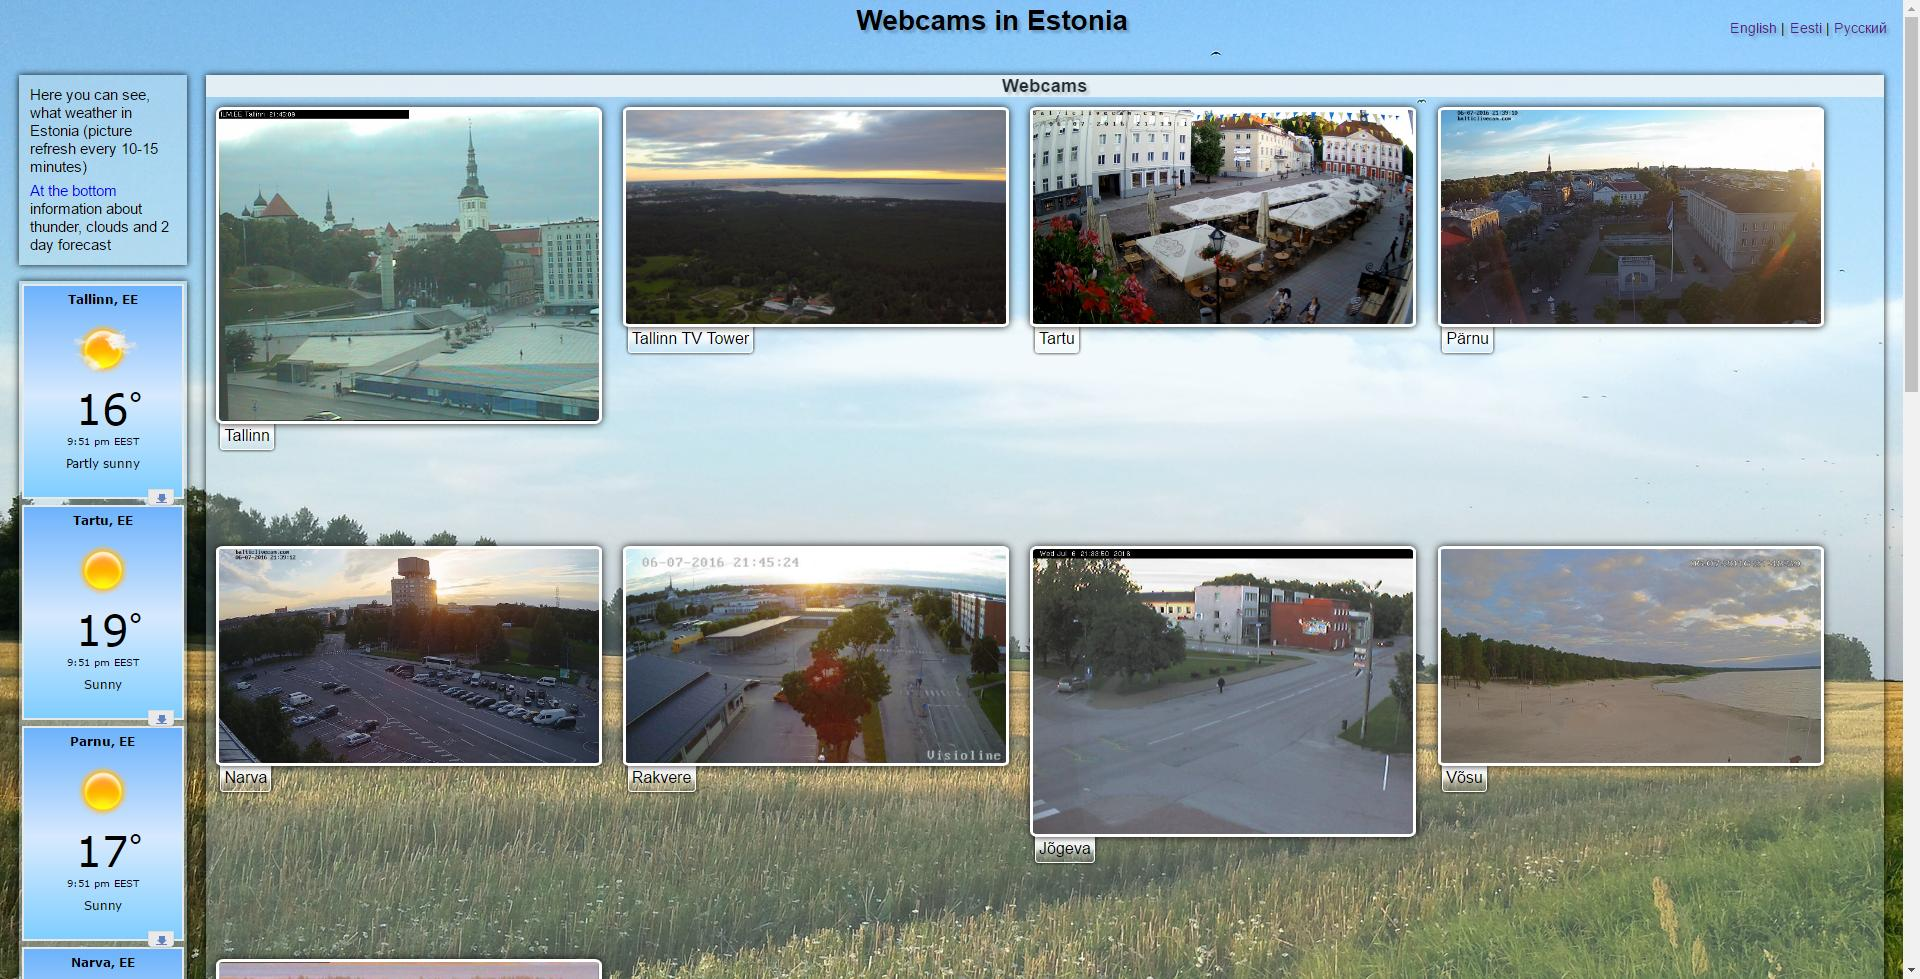 Estonian webcams